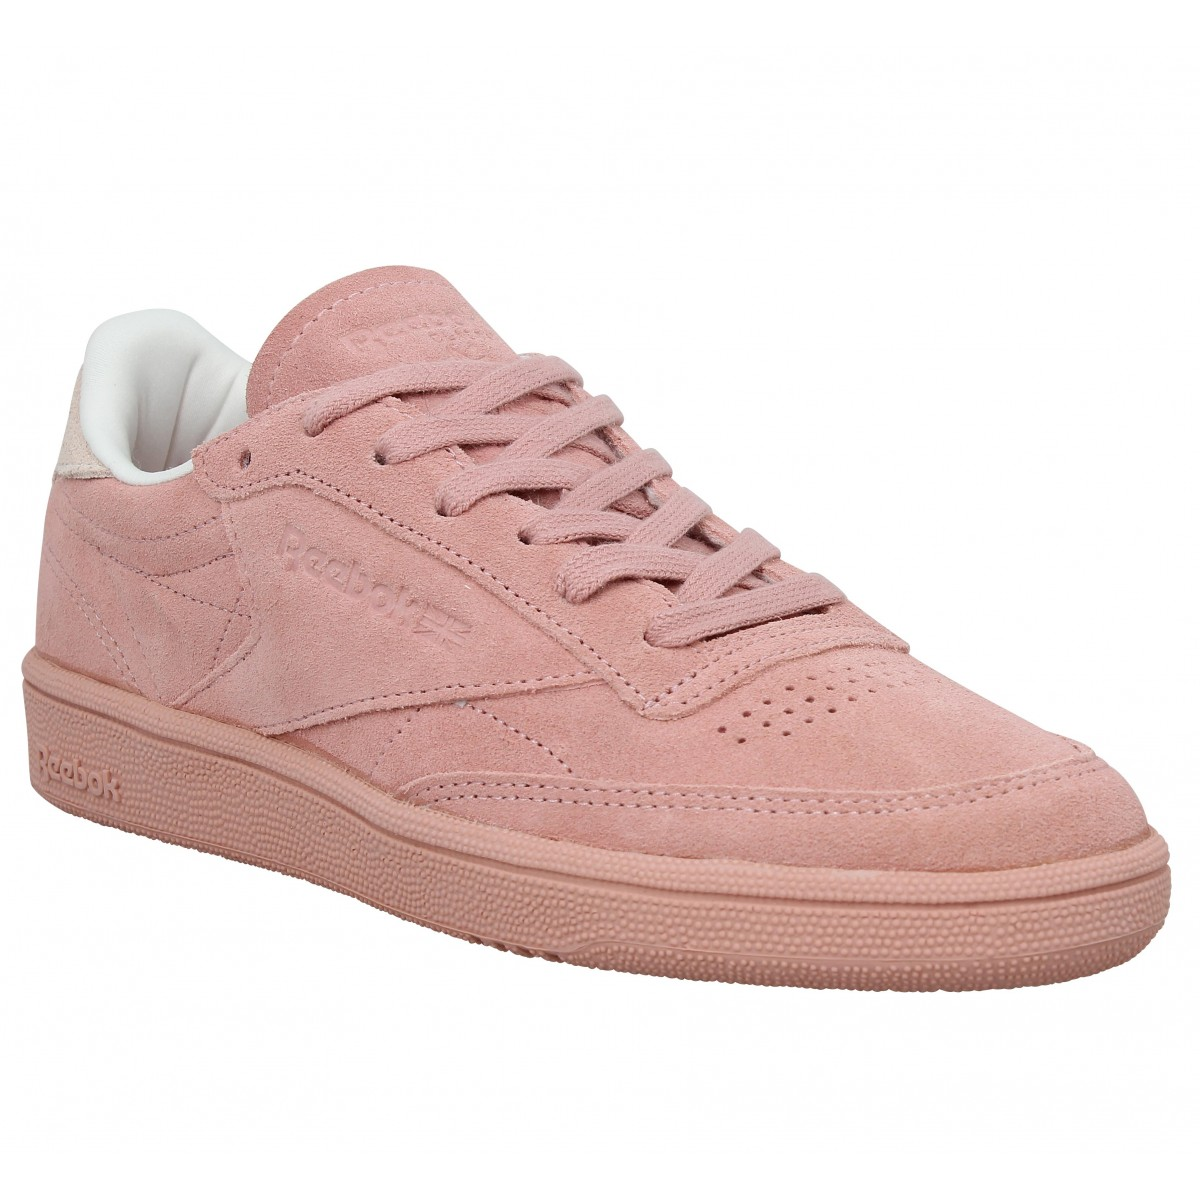 soldes reebok club c 85 velours femme rose femme fanny chaussures. Black Bedroom Furniture Sets. Home Design Ideas